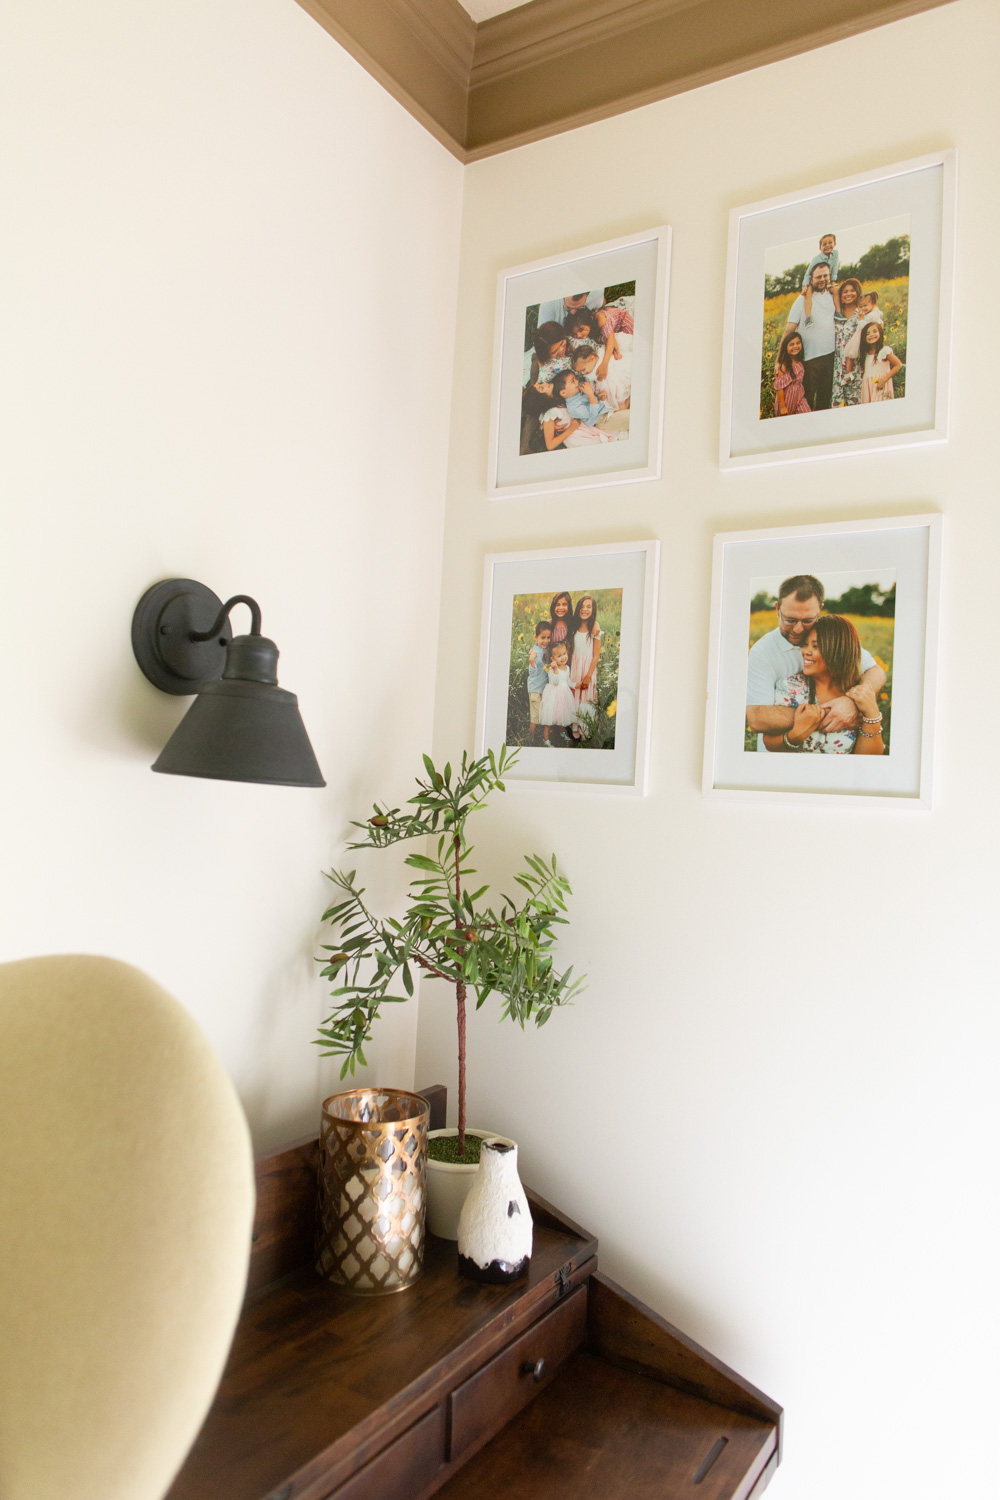 DIY Wall Sconce Lighting without Electricity or Power - Easy Hack